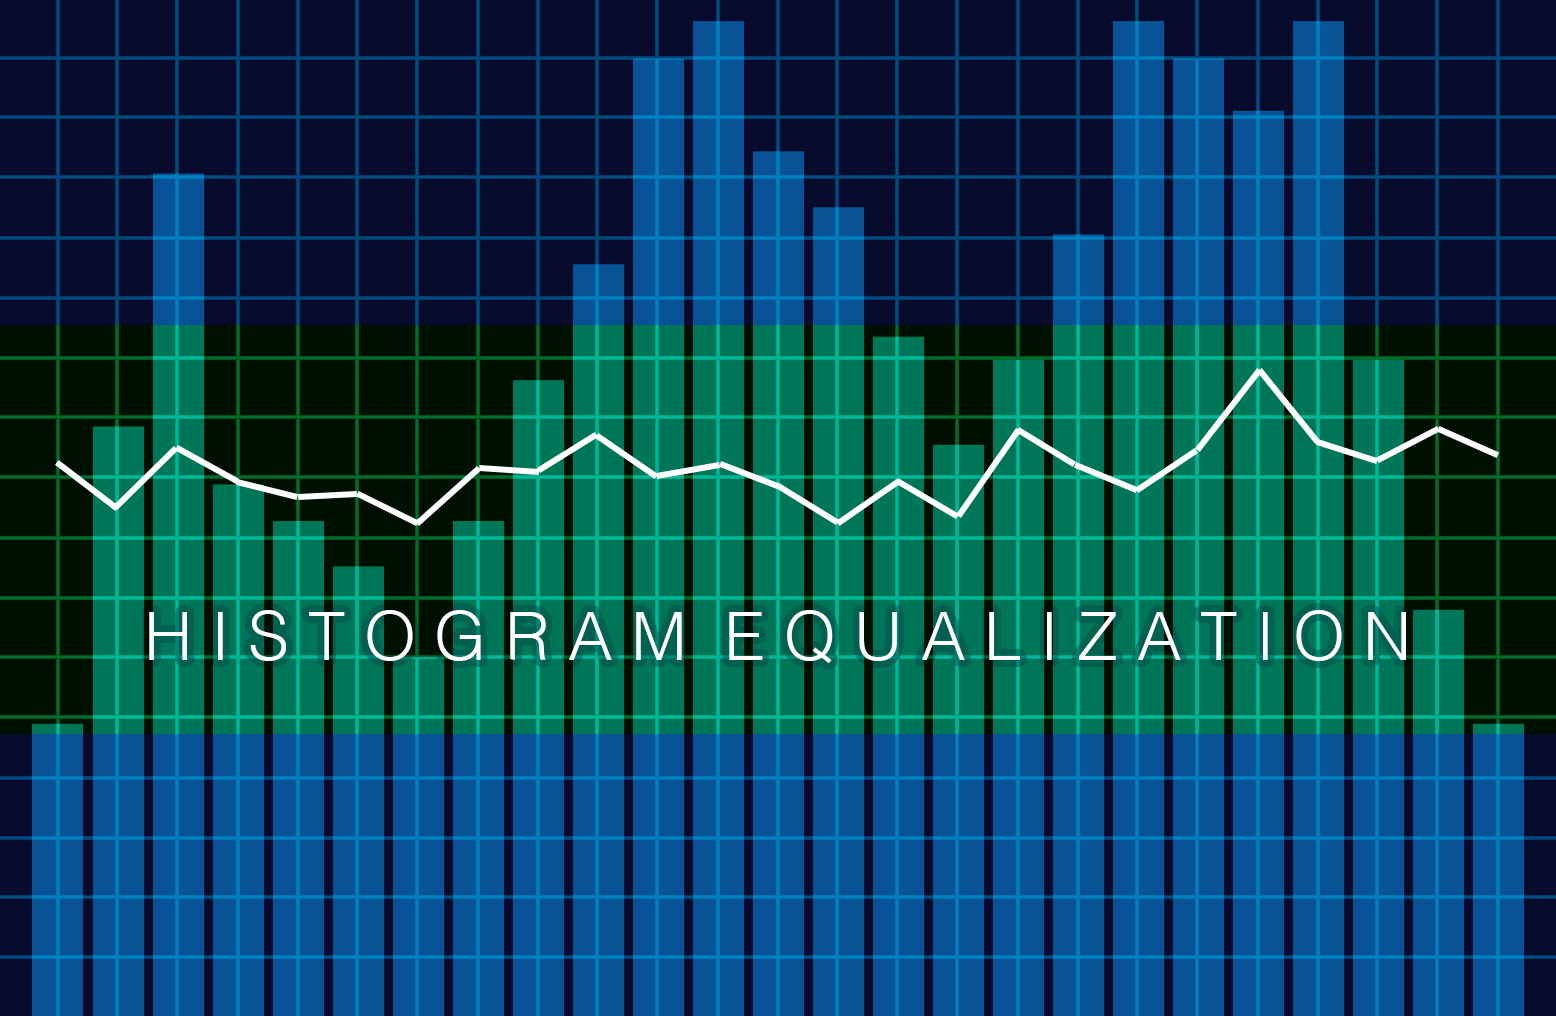 Histogram Equalization in Python from Scratch - By Tory Walker